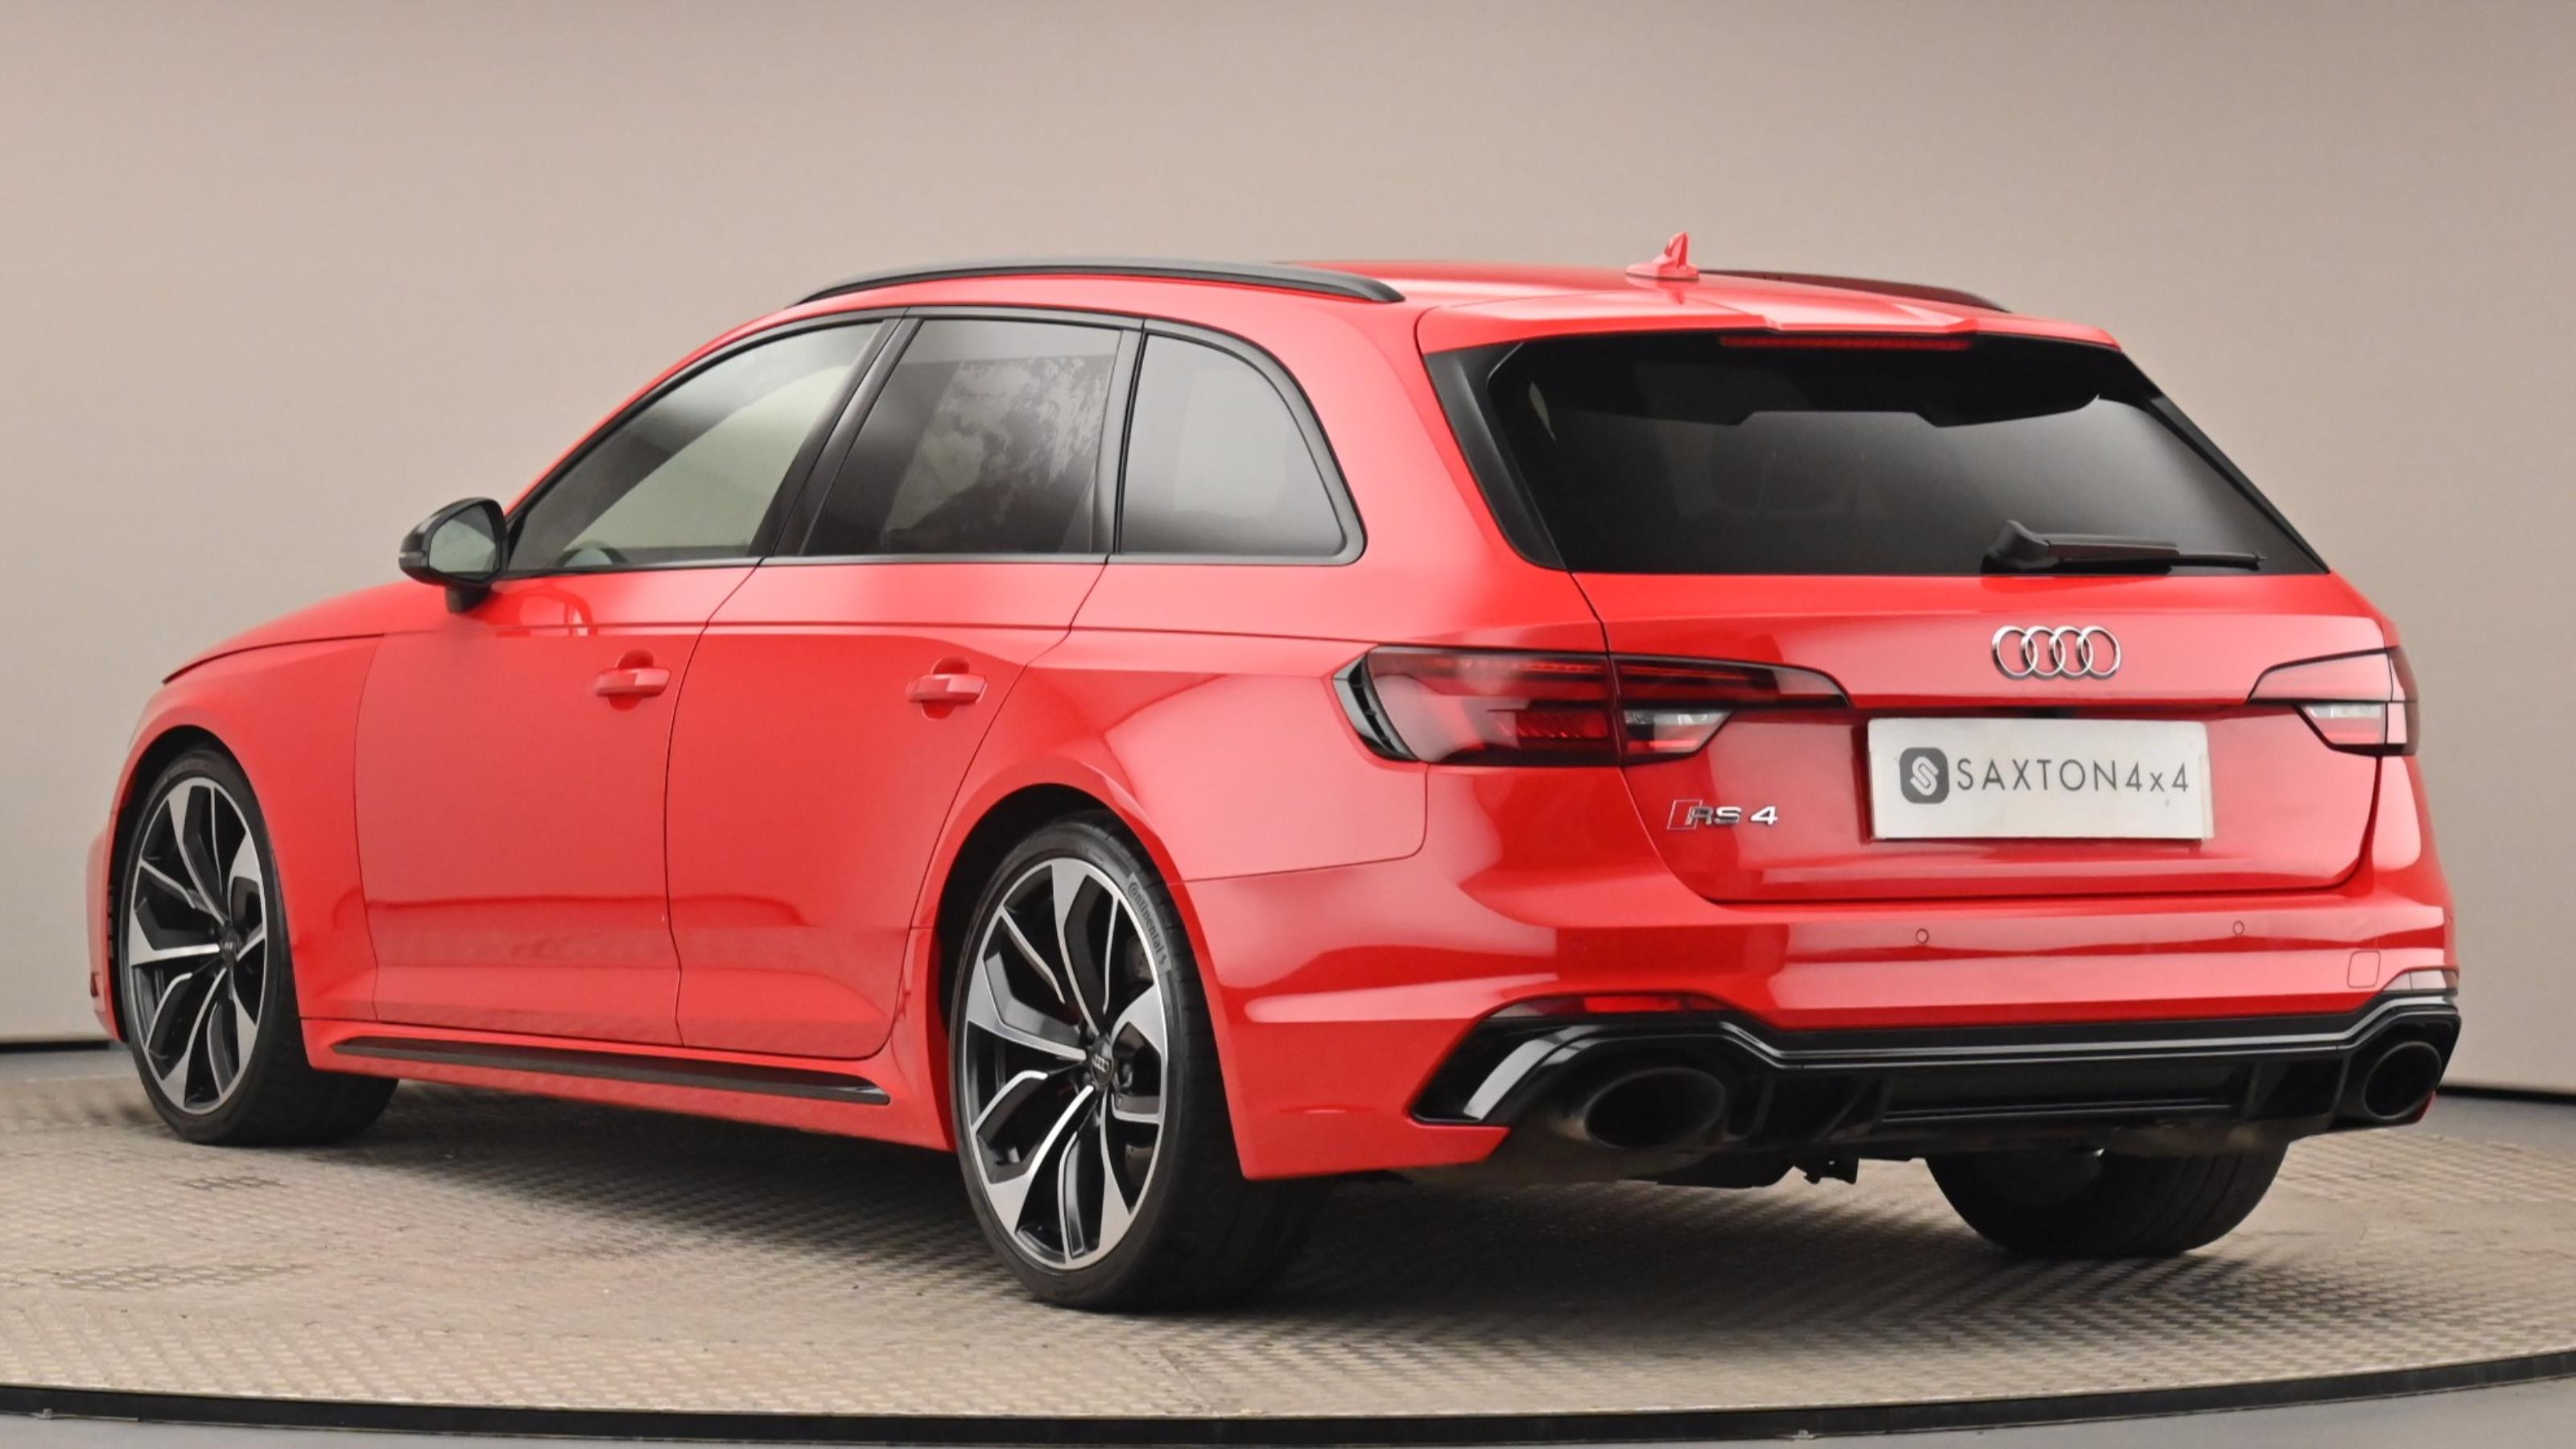 Used 2018 Audi RS4 2.9 TFSI Quattro 5dr Tip tronic RED at Saxton4x4